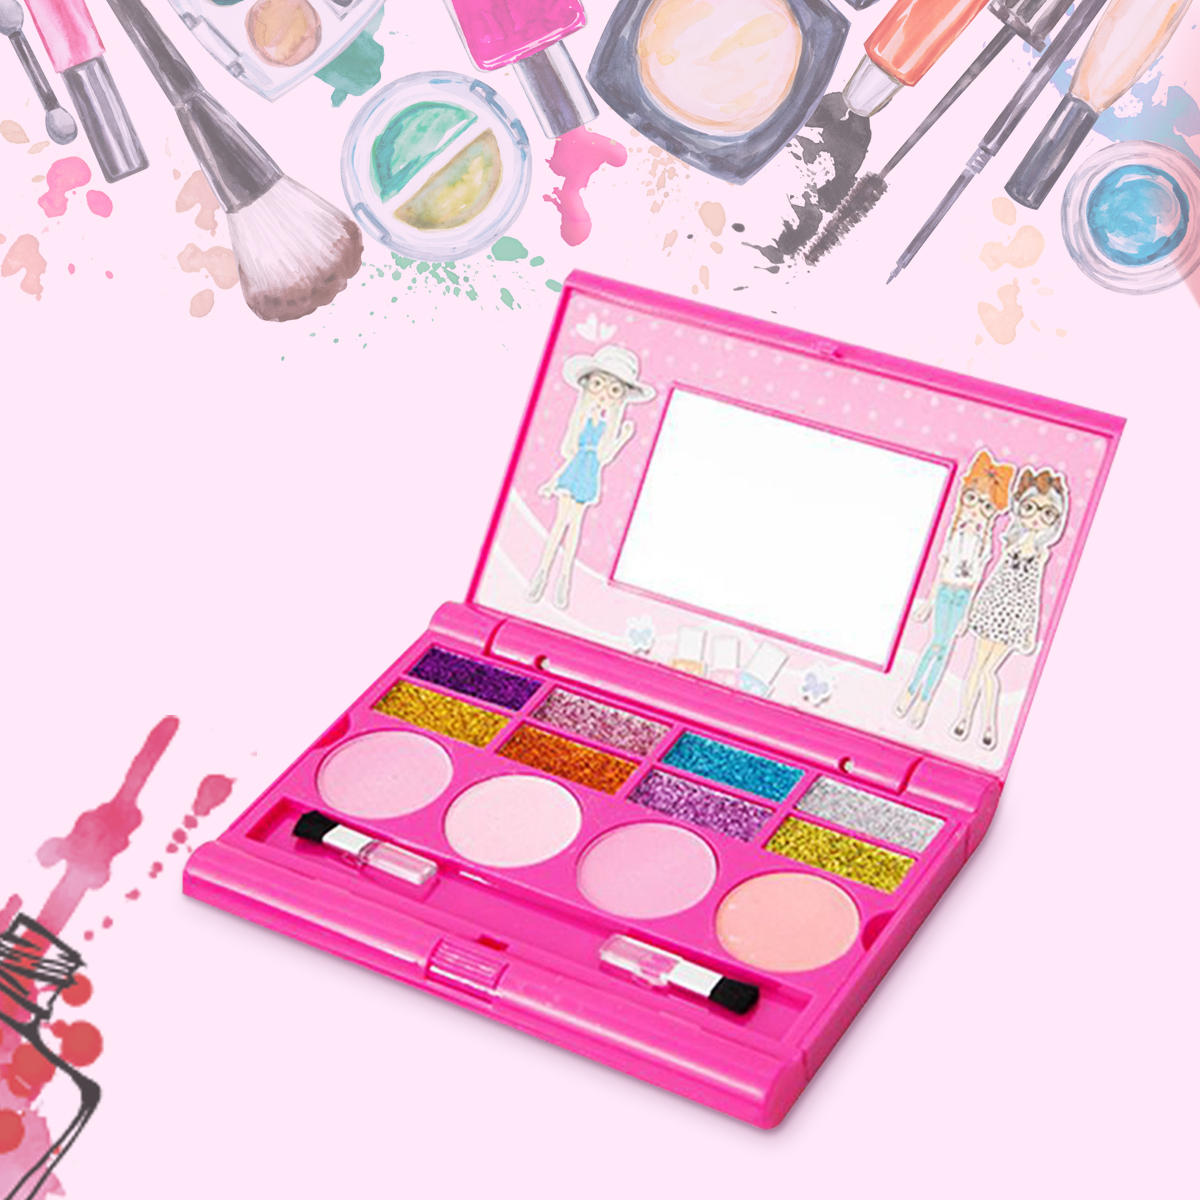 Eye Shadow Eye Shadow Diy Makeup Tools Children Lovely Plastic Makeup Comestics Kit